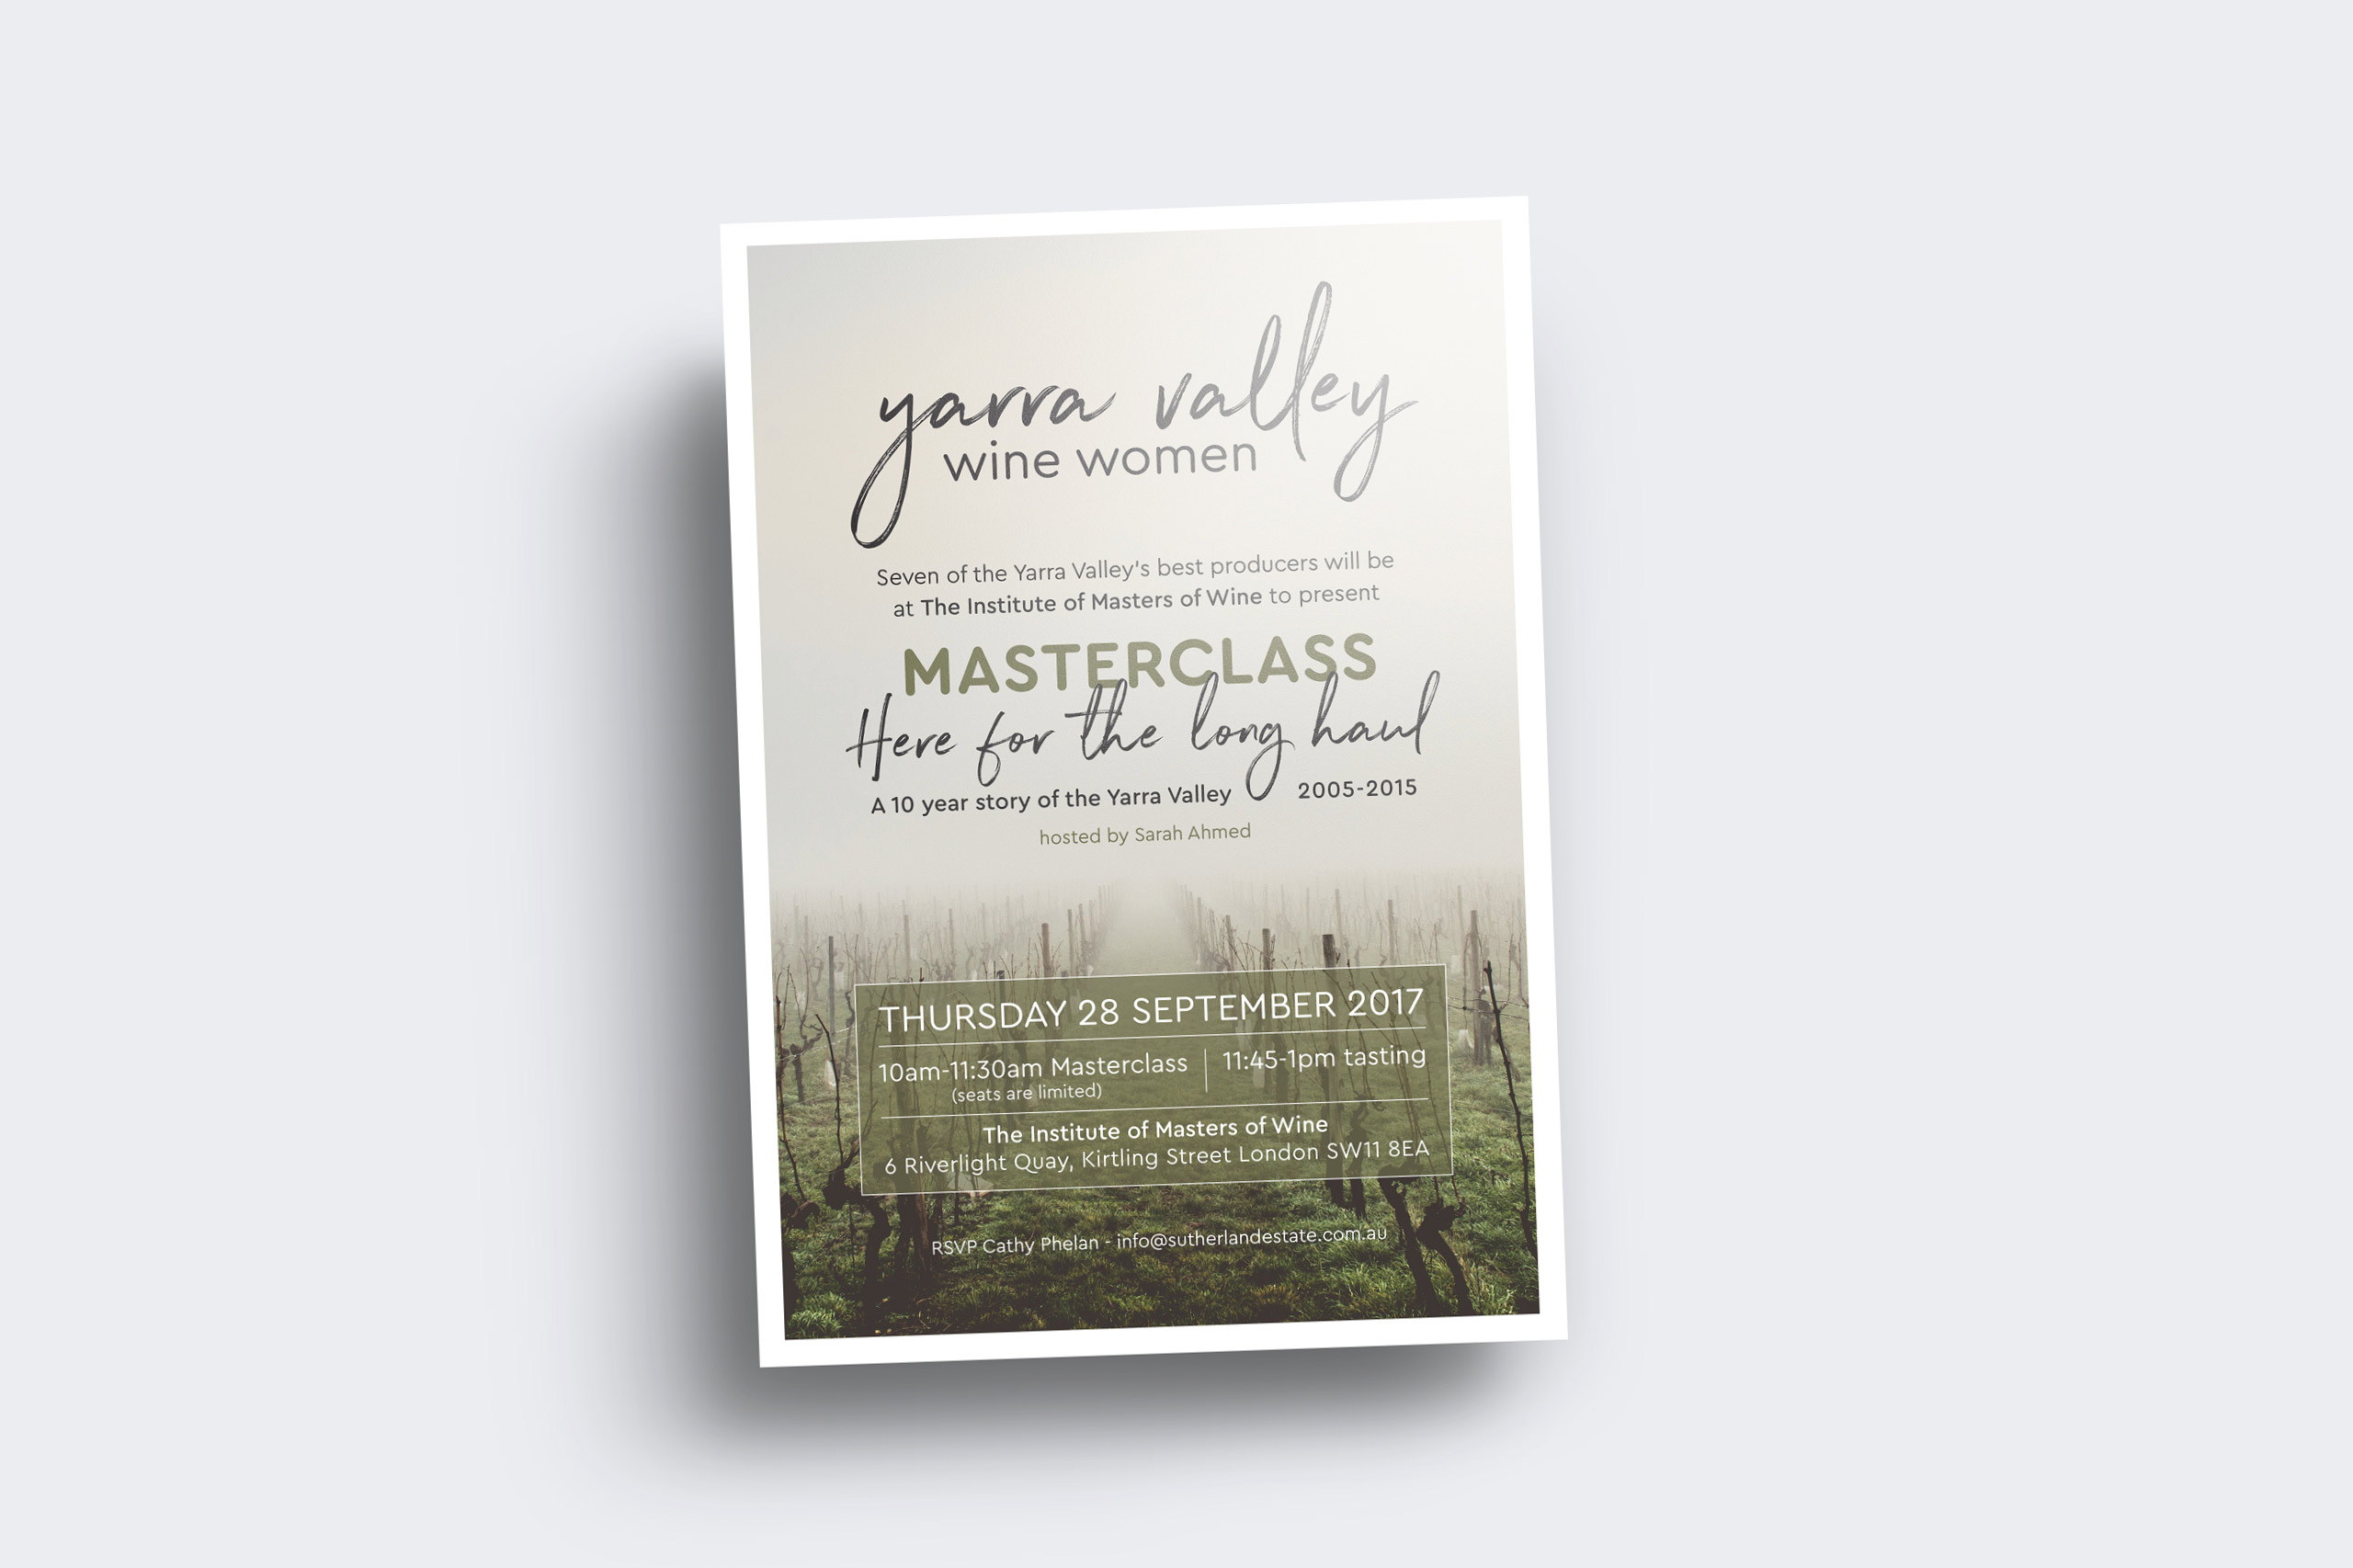 yarra valley wine women invitation design Maker and co design